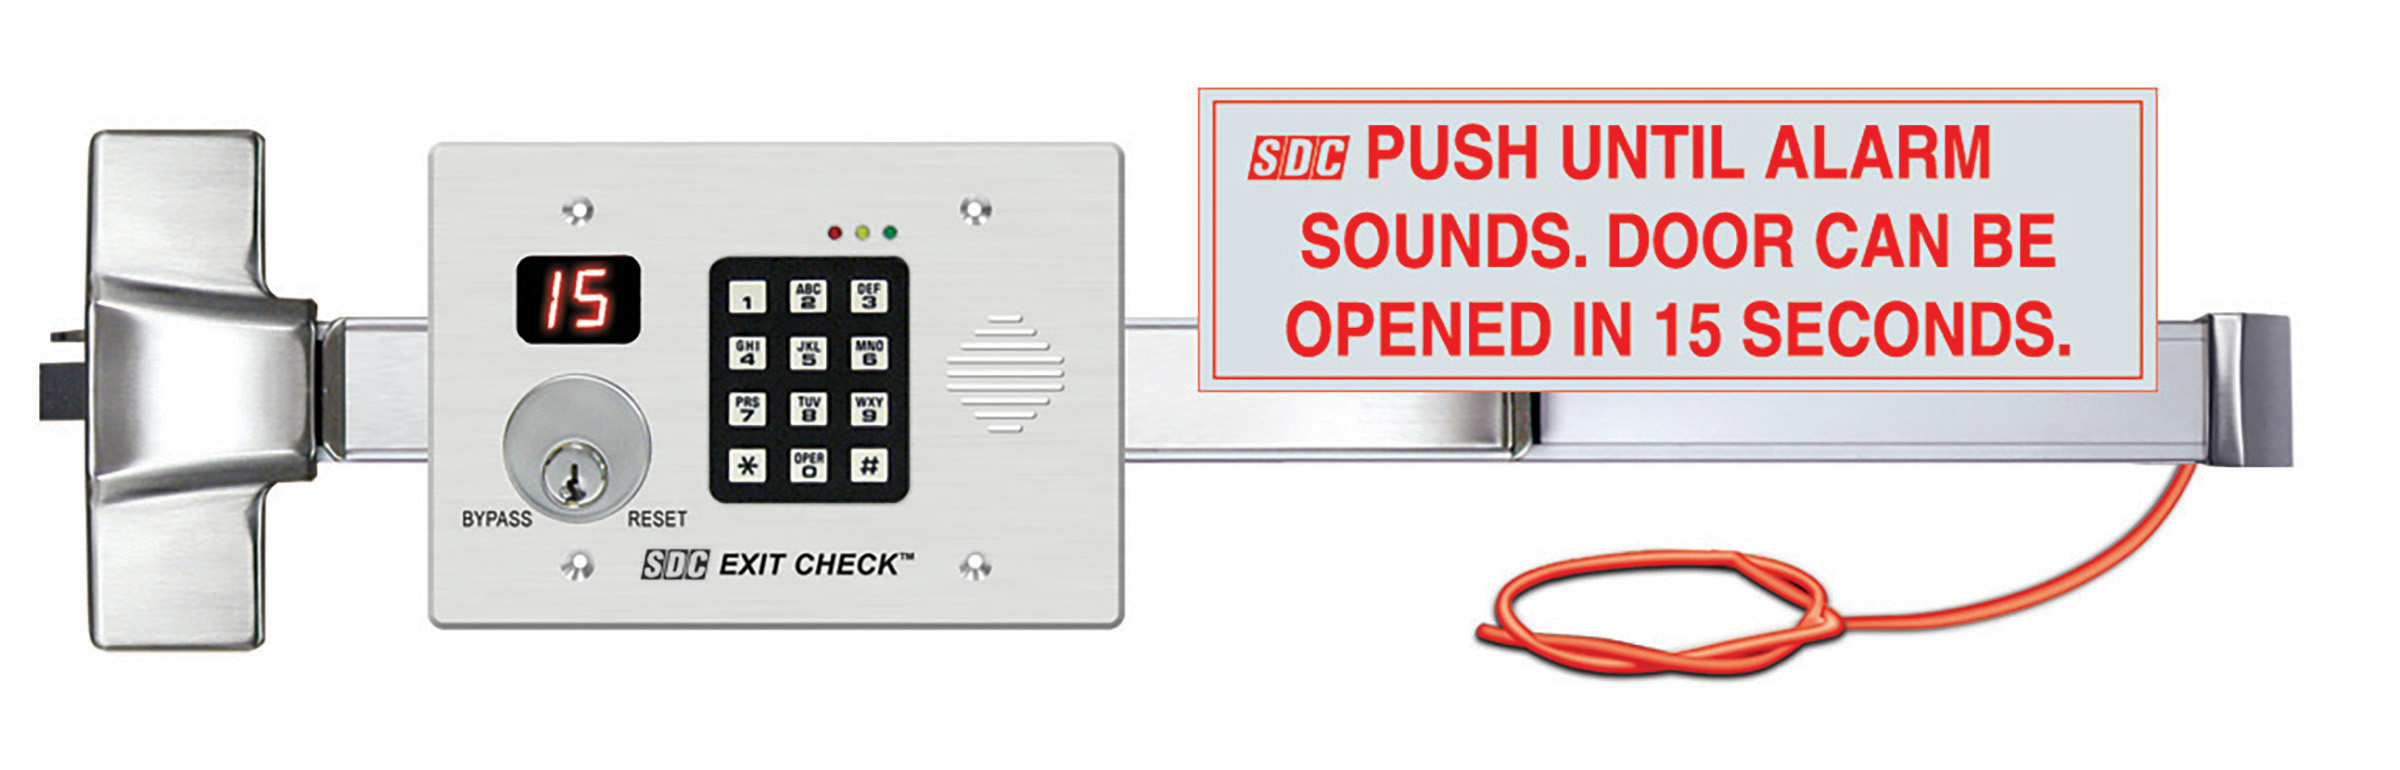 How To Select the Right Delayed Egress Lock Configuration For You  sc 1 st  Security Door Controls & How To Select the Right Delayed Egress Lock Configuration For You ...